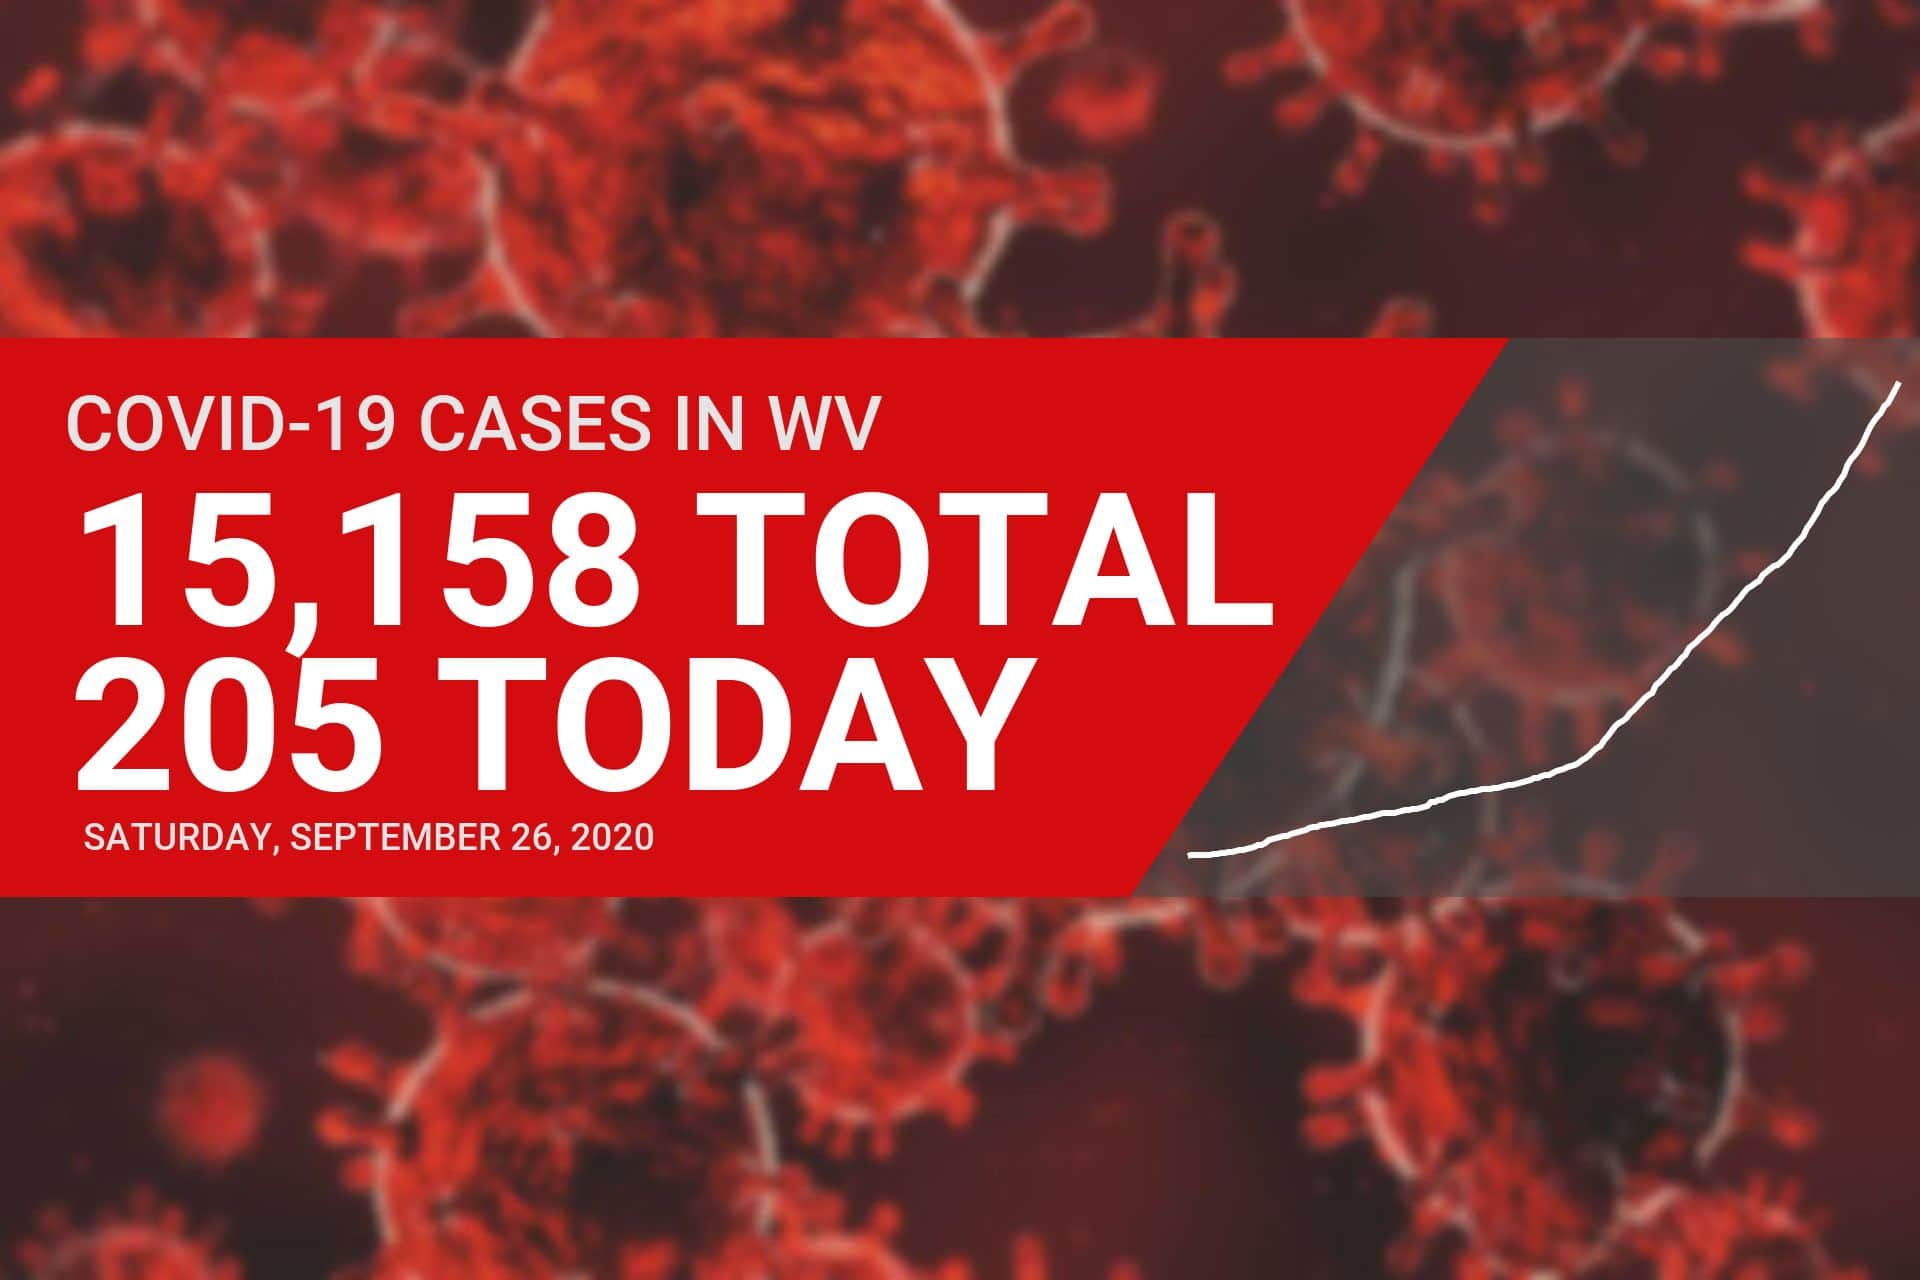 Seven new COVID-19 cases reported in Upshur County on Saturday, a new daily record